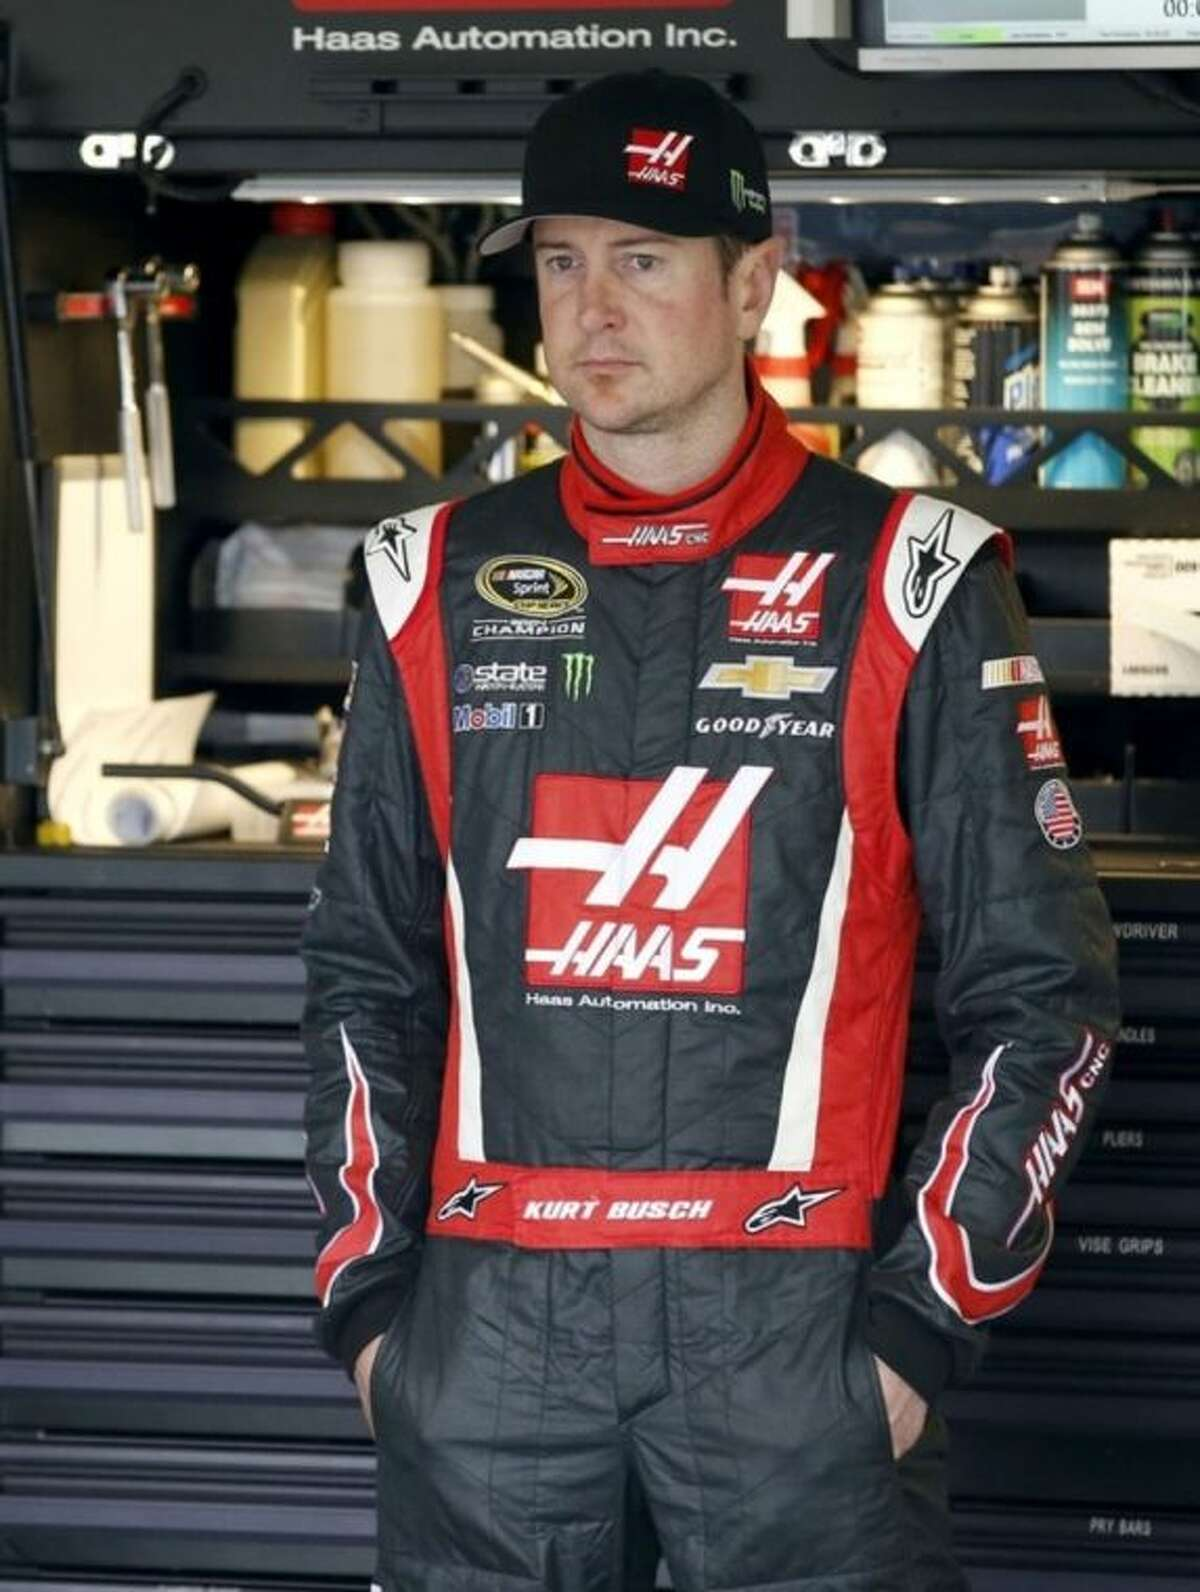 Kurt Busch stands by himself in the garage during NASCAR Sprint Cup auto racing practice Saturday, March 1, 2014, in Avondale, Ariz. (AP Photo/Ross D. Franklin)